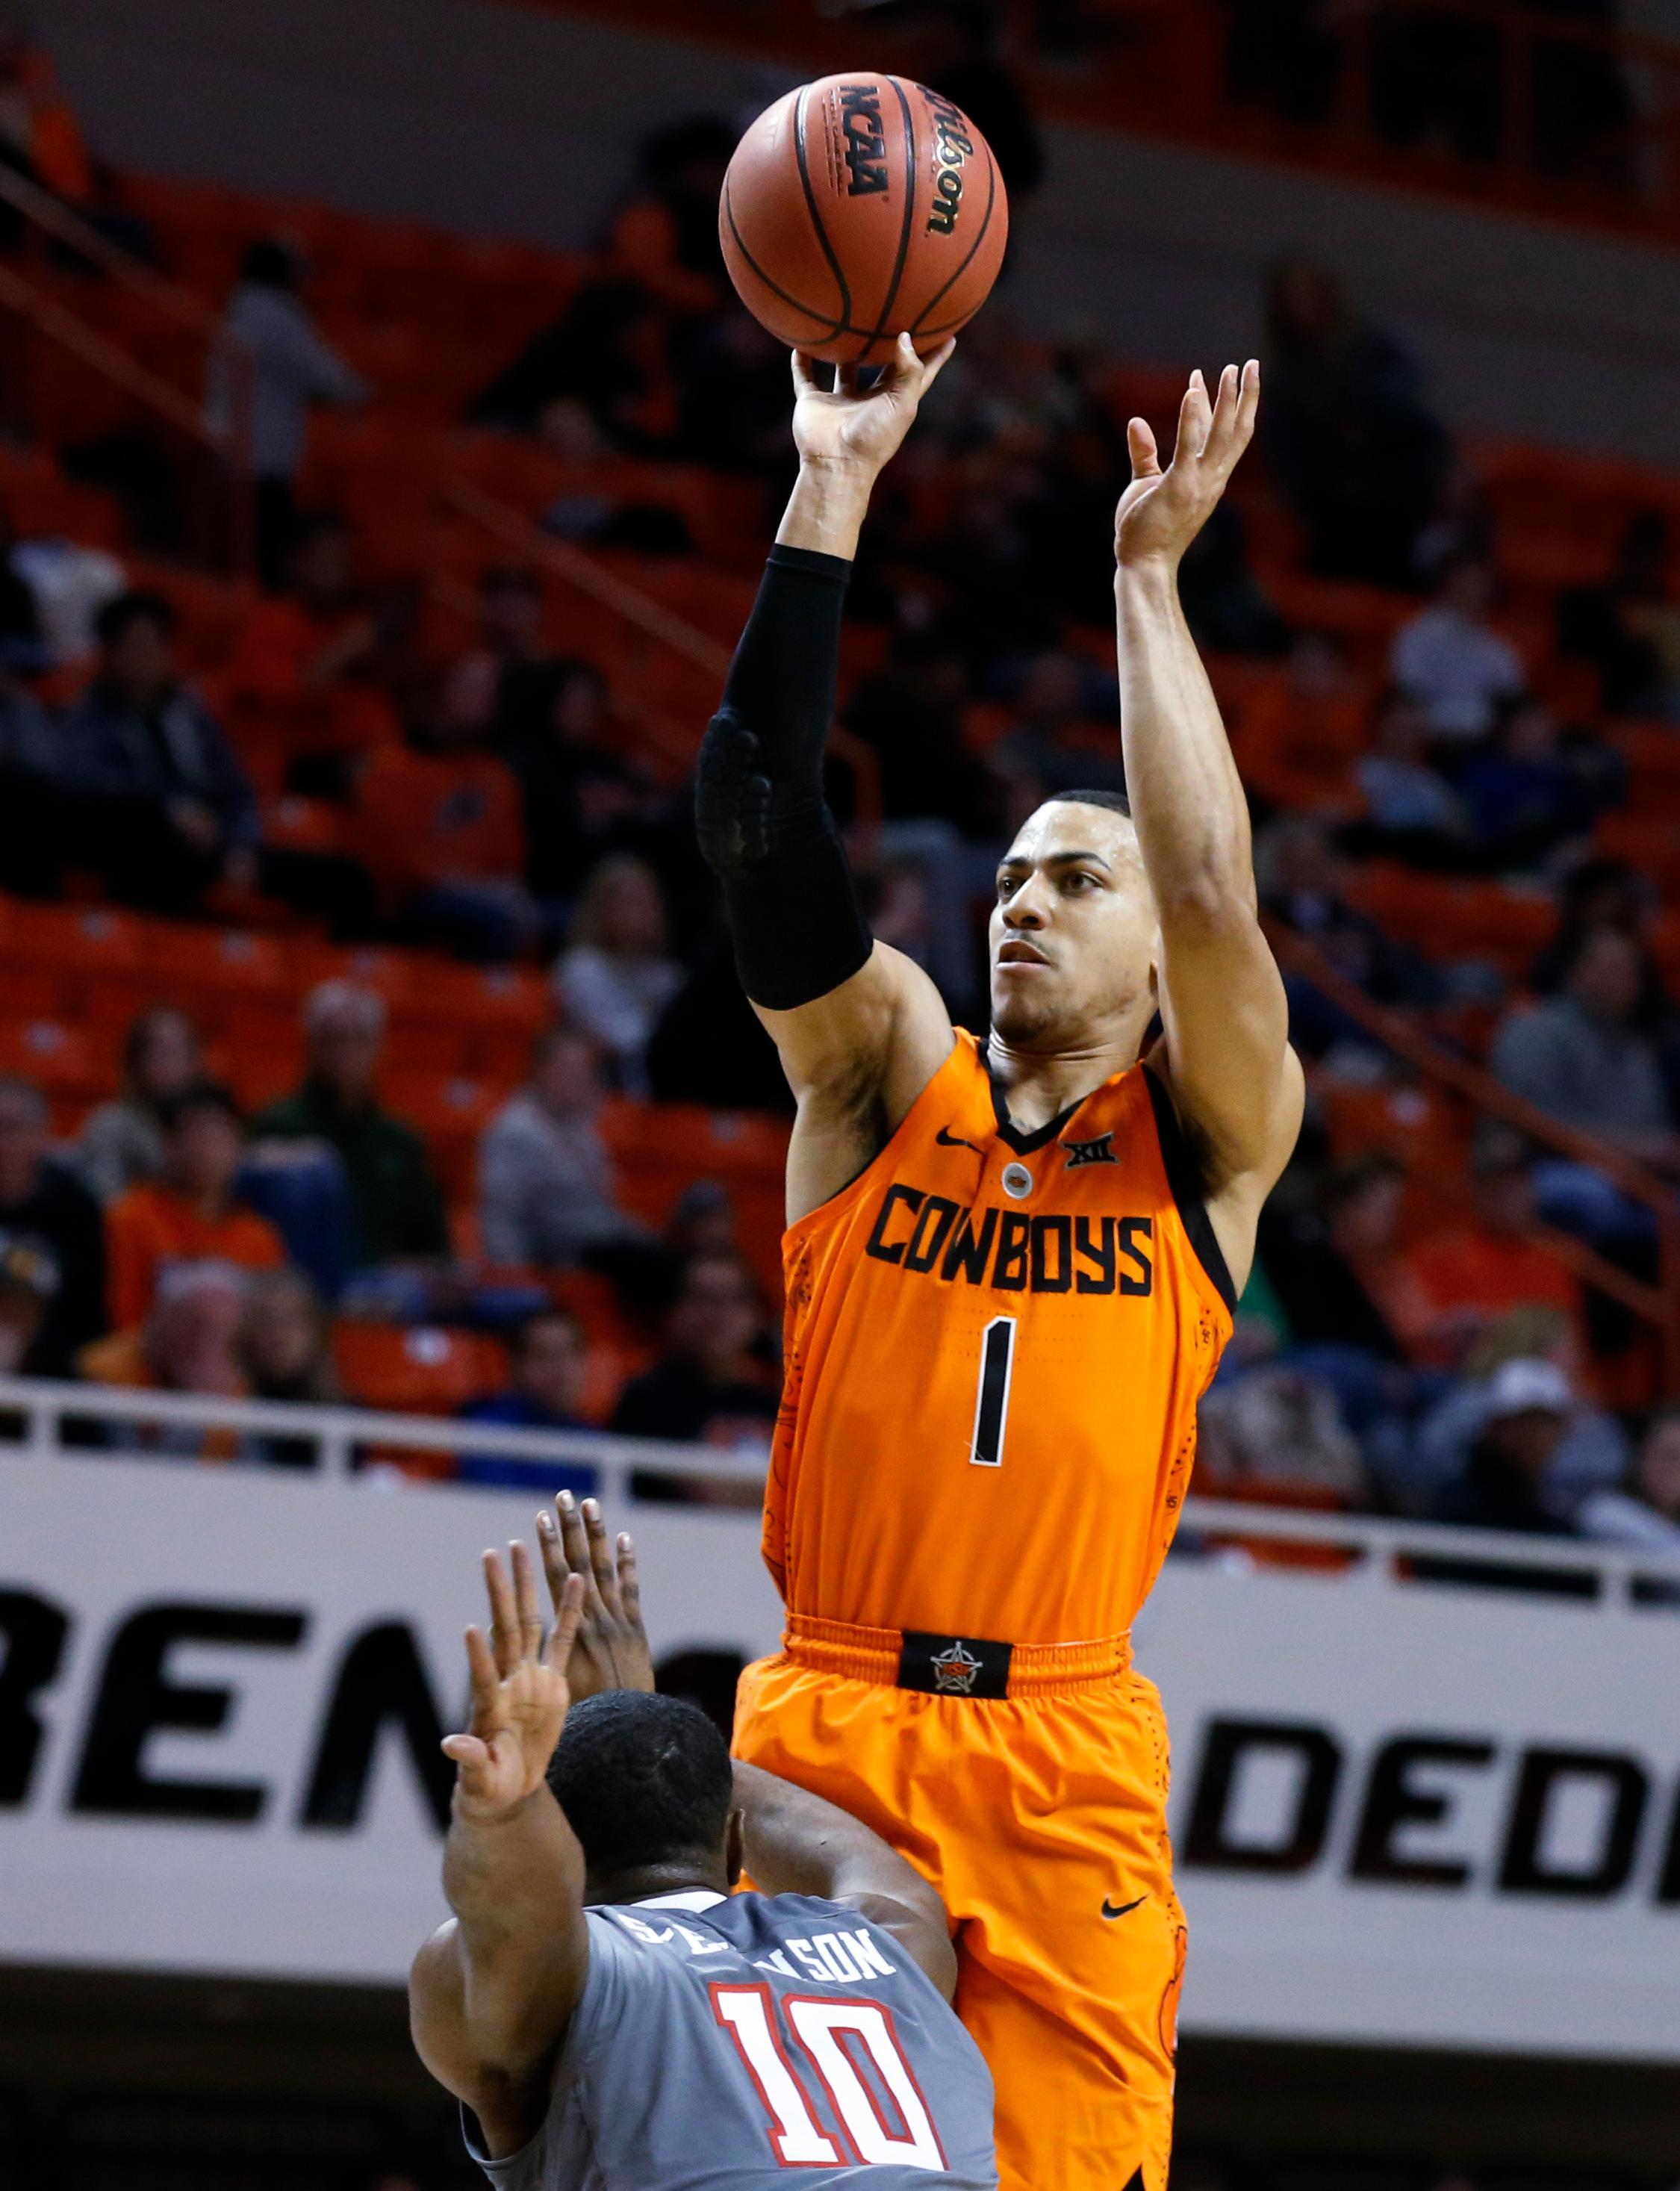 Oklahoma State guard Kendall Smith (1) shoots over Texas Tech guard Niem Stevenson (10) during the first half of an NCAA college basketball game in Stillwater, Okla., Wednesday, Feb. 21, 2018. (AP Photo/Sue Ogrocki)